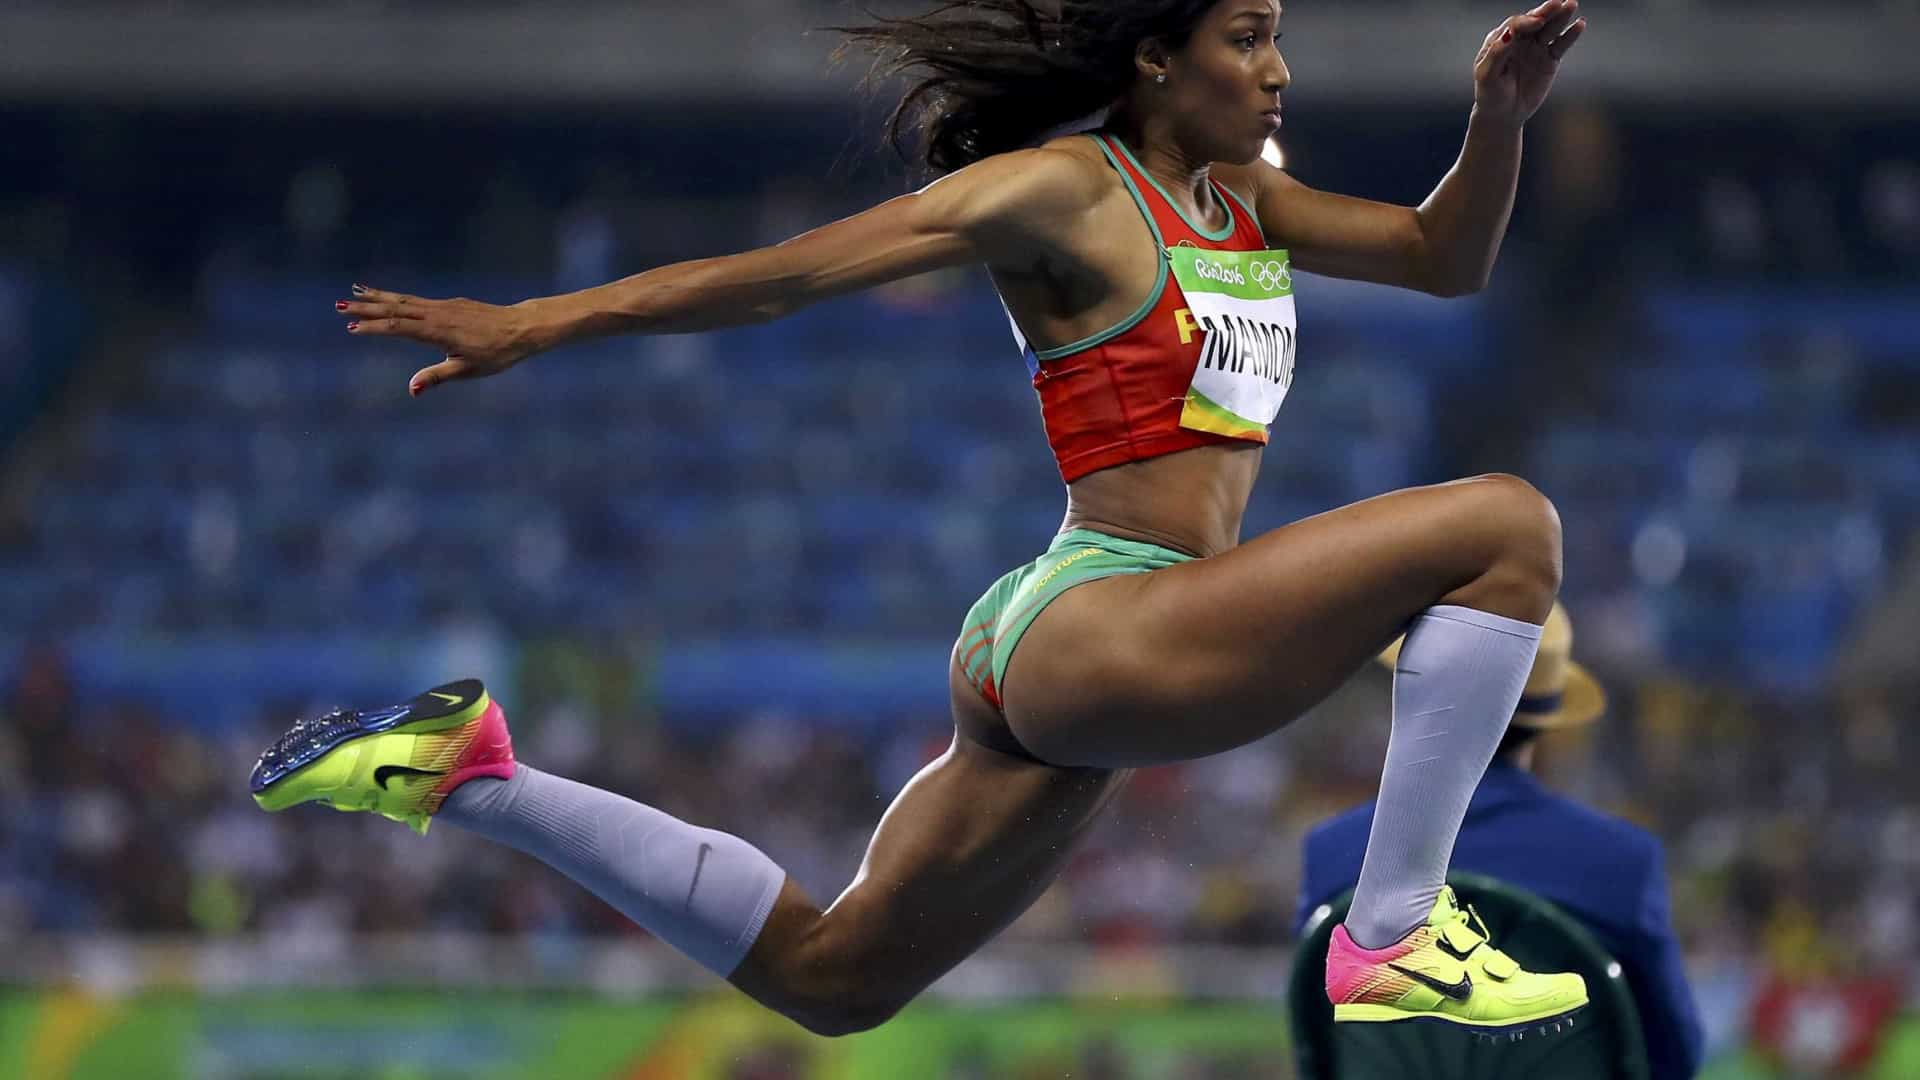 Patrícia Mamona e Susana Costa qualificam-se para a final do triplo salto